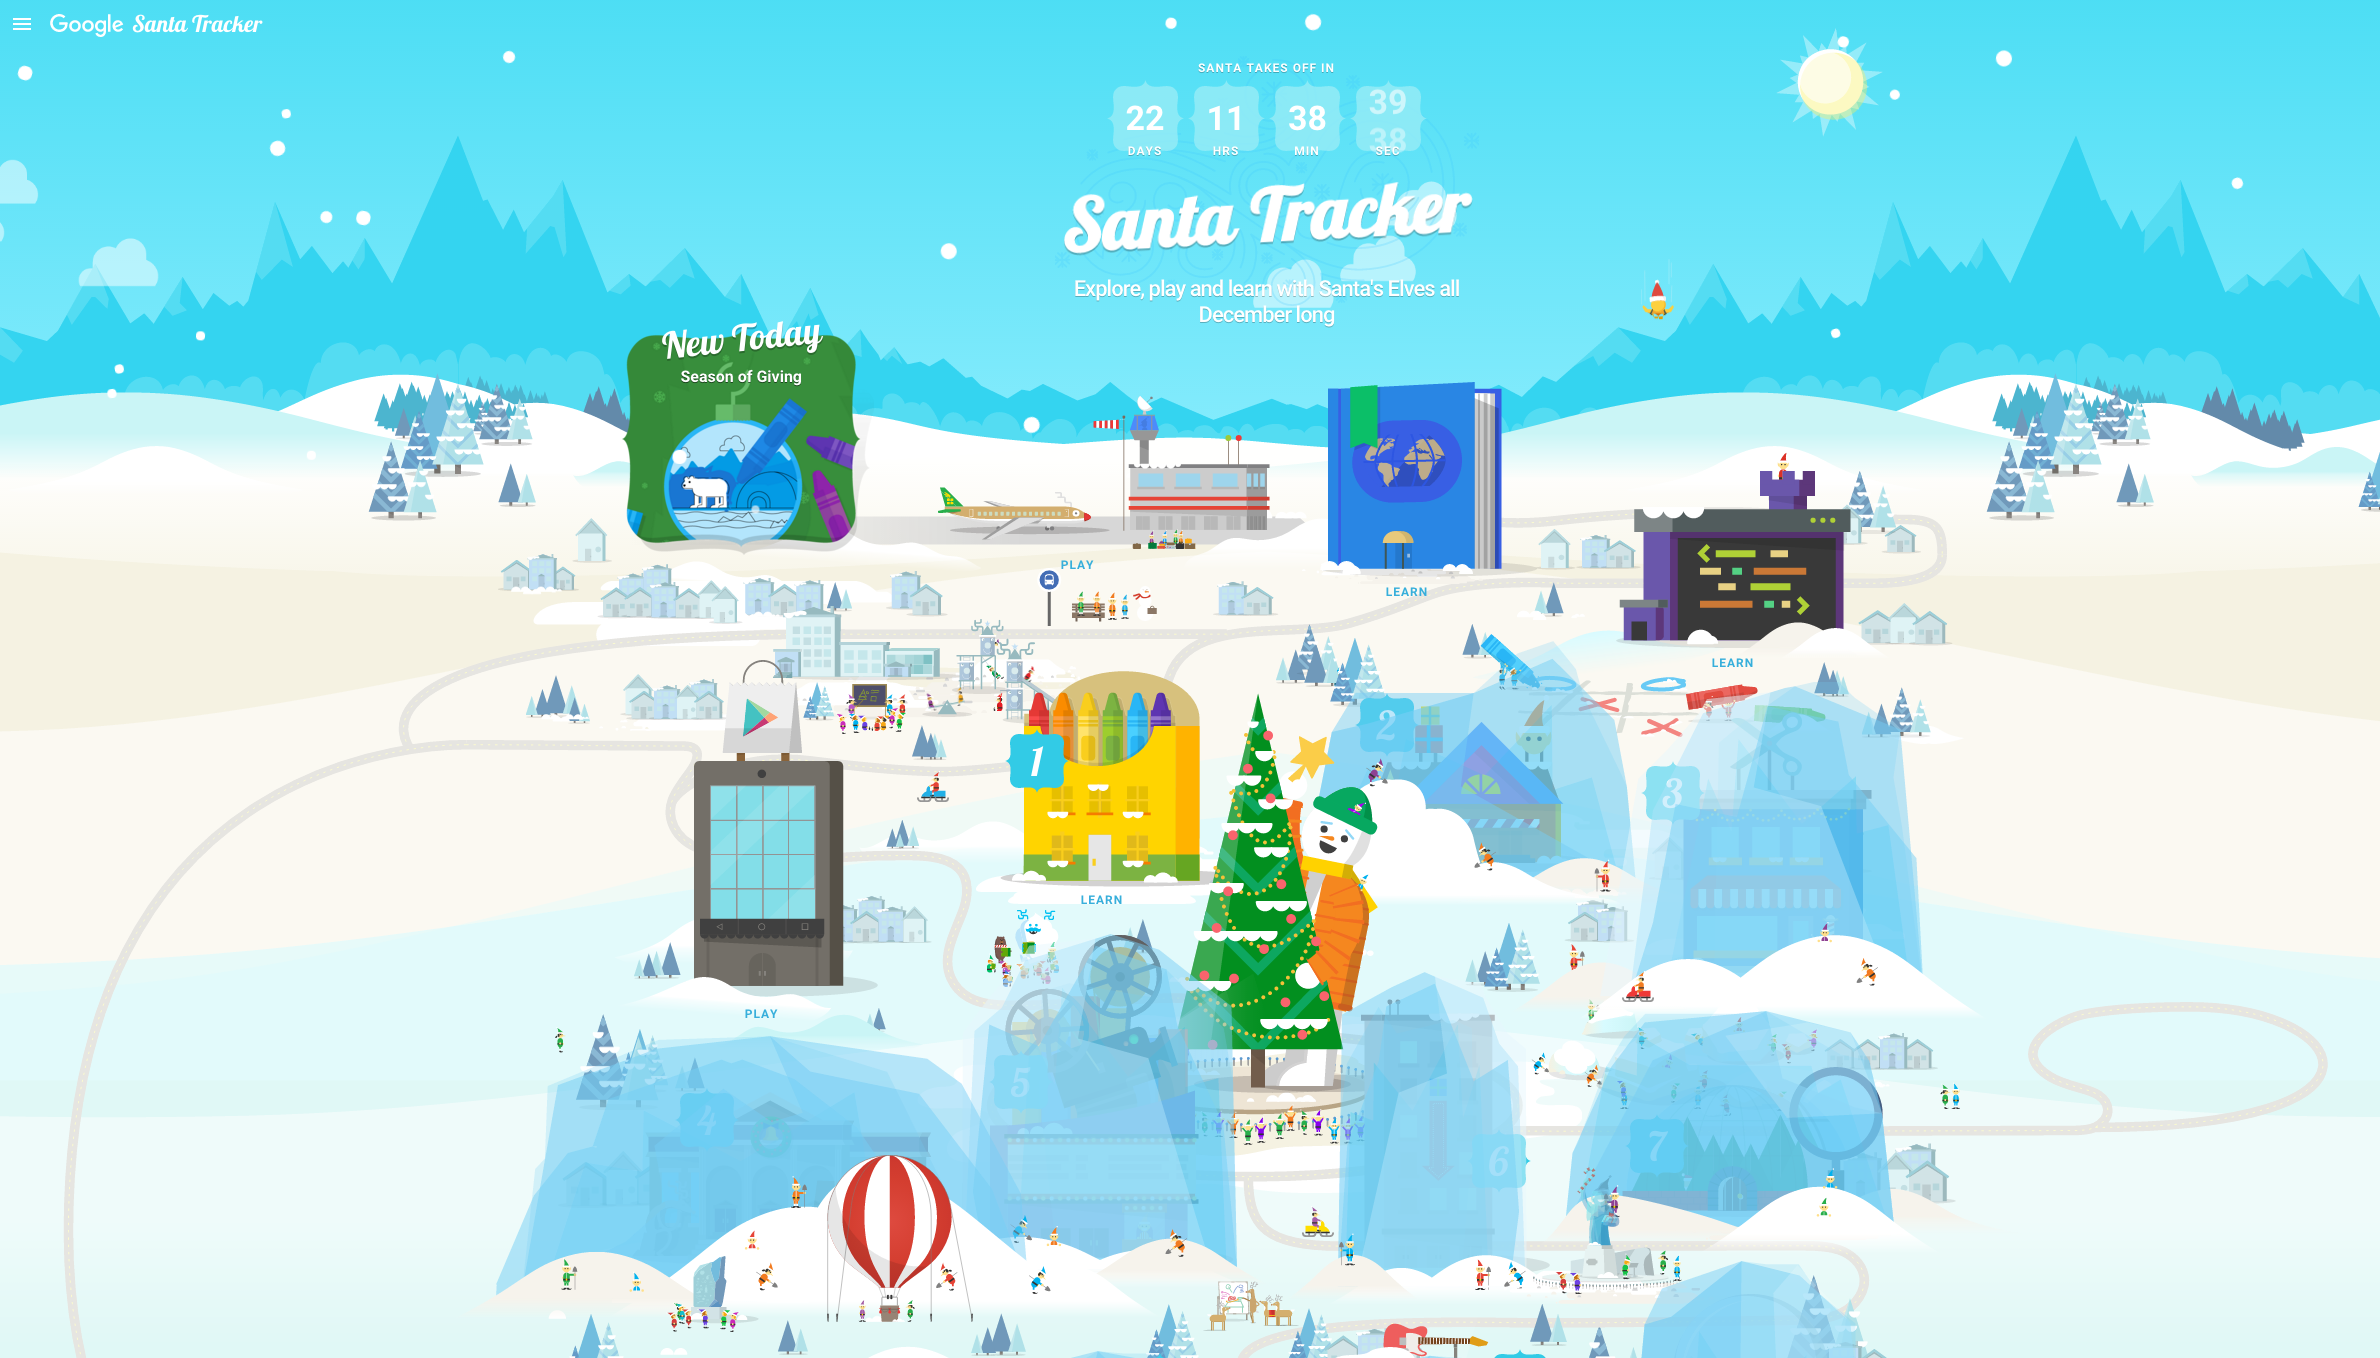 Santa's village comes to life as Google's holiday tracker goes online